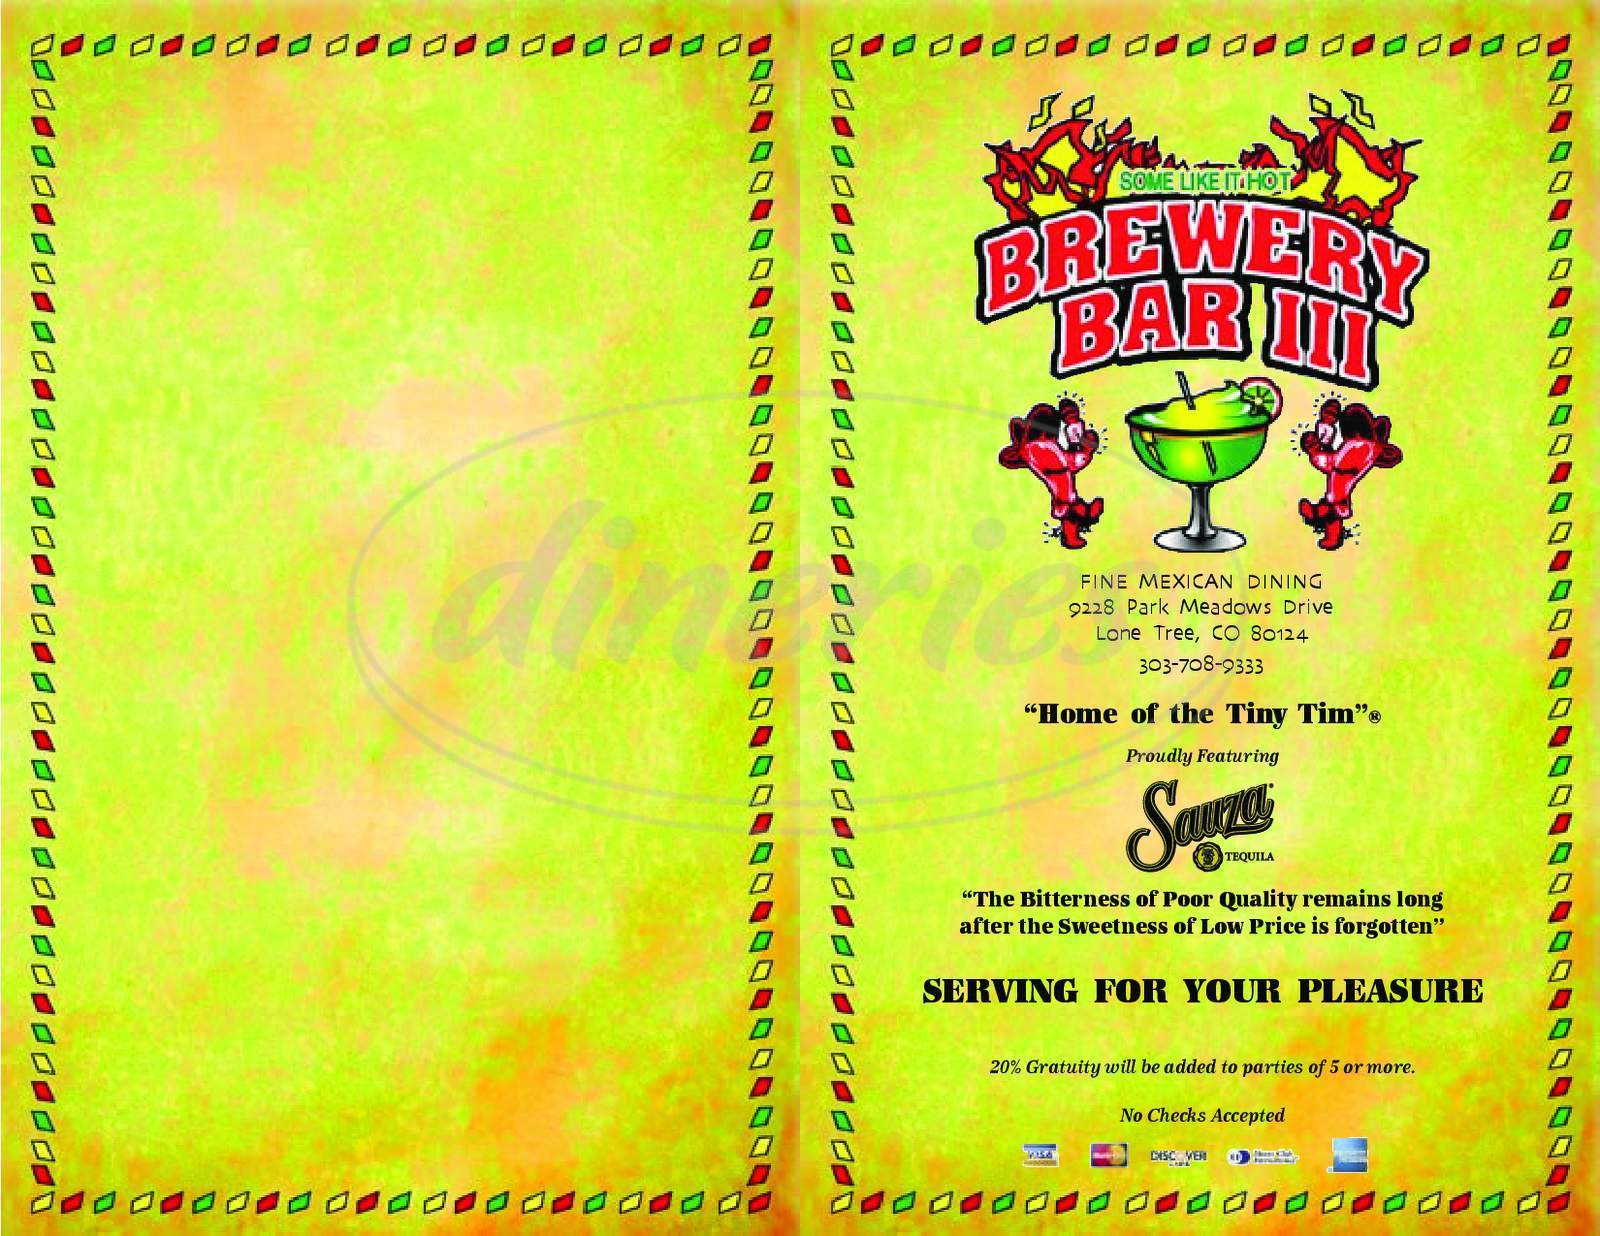 menu for Brewery Bar III